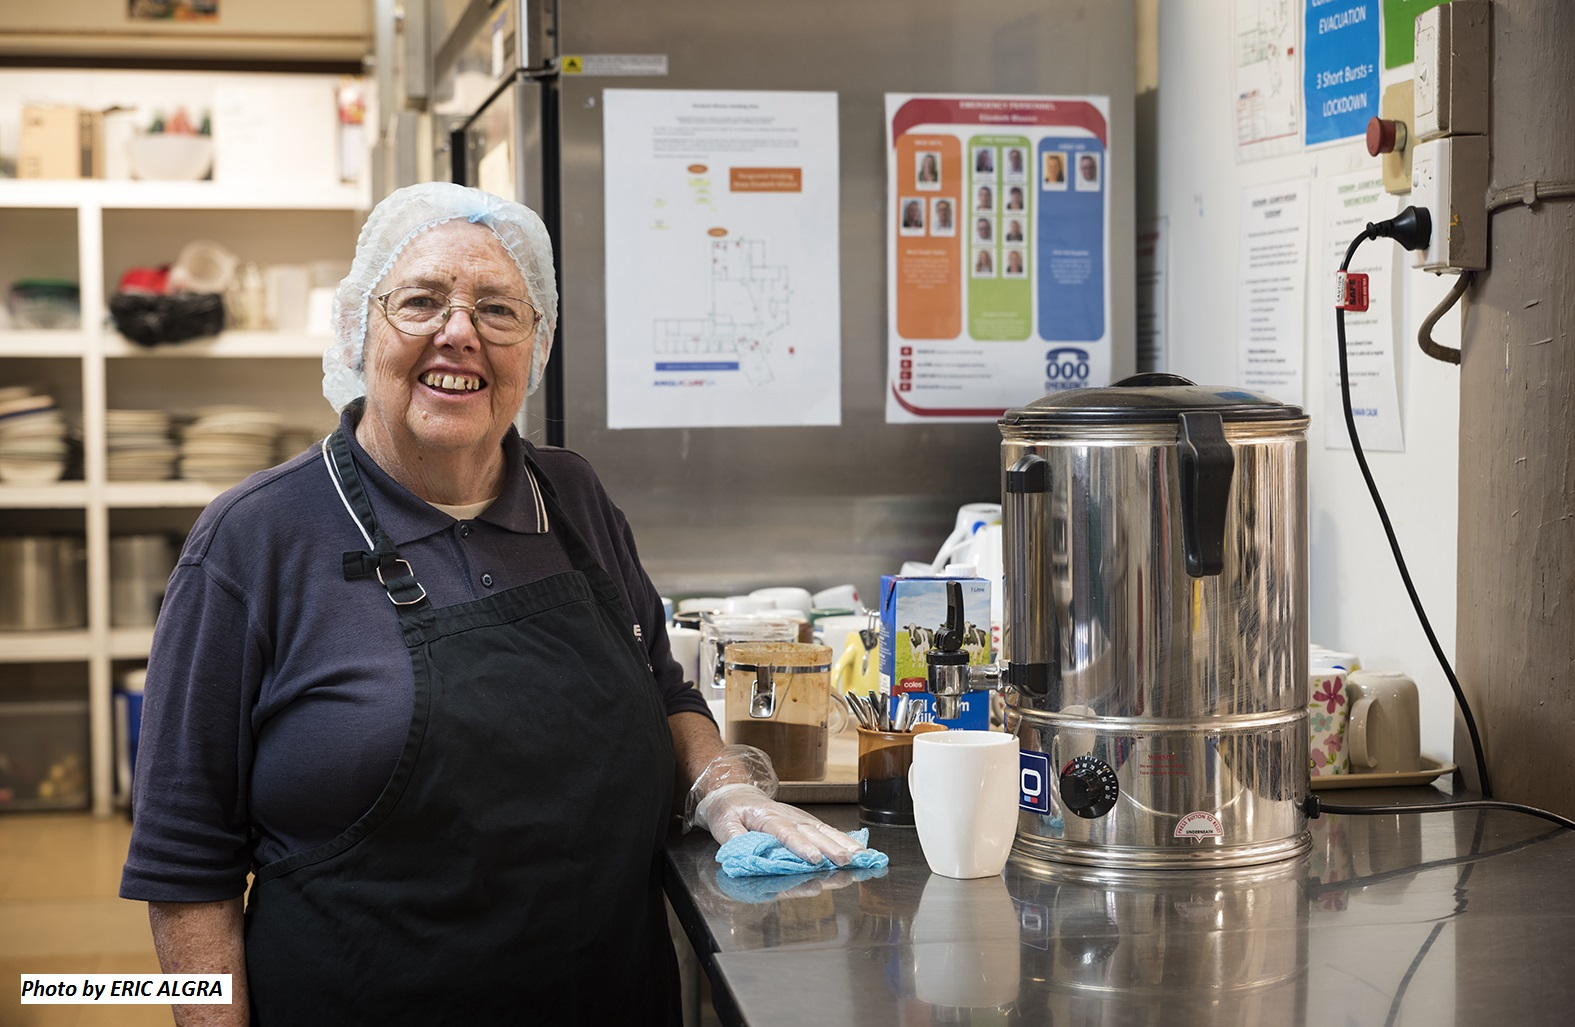 Lady smiling in a kitchen cleaning and making a hot drink